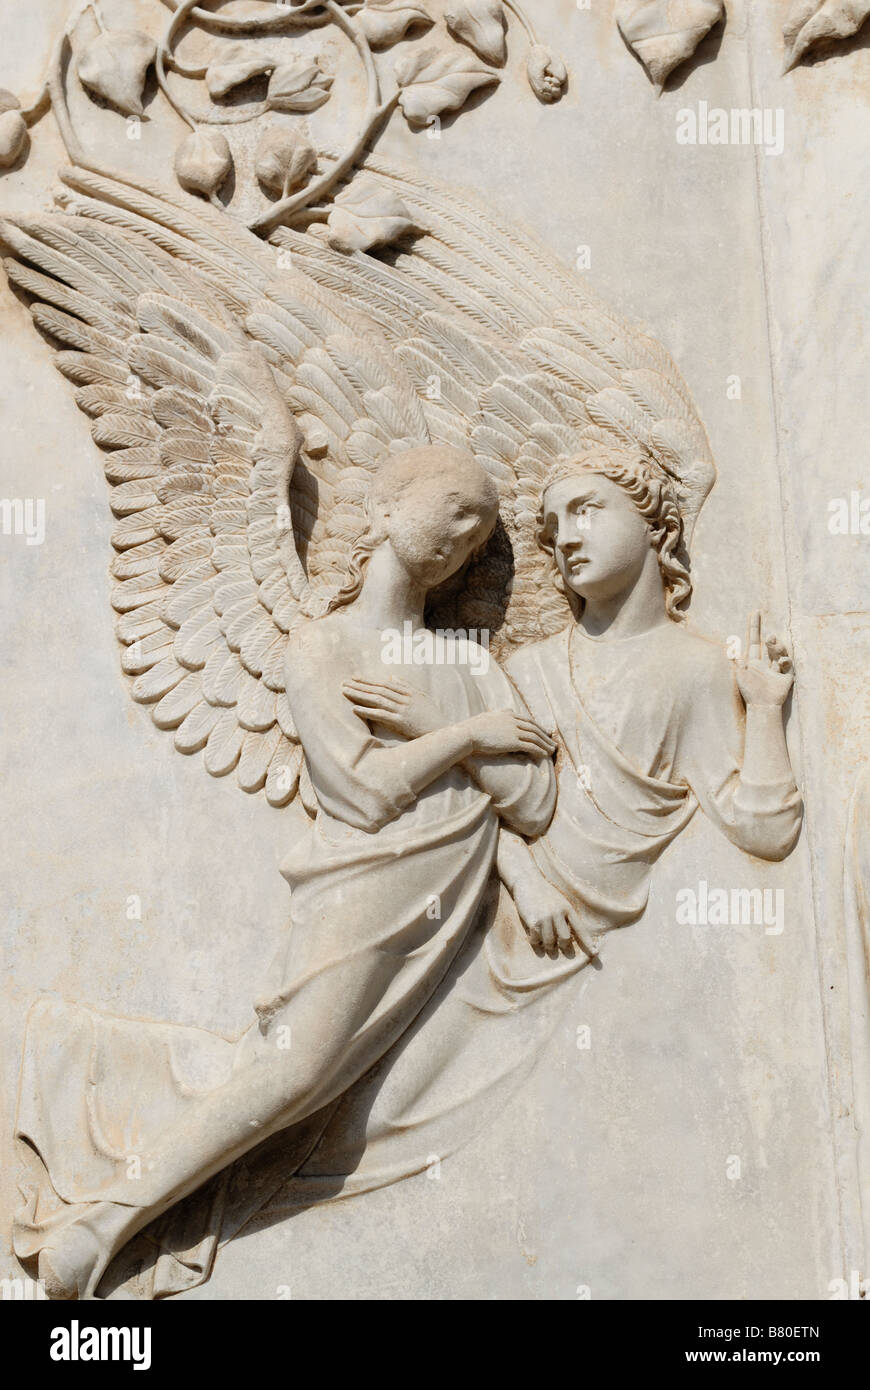 Orvieto Umbria Italy Detail of marble bas reliefs on the facade of the Duomo - Stock Image